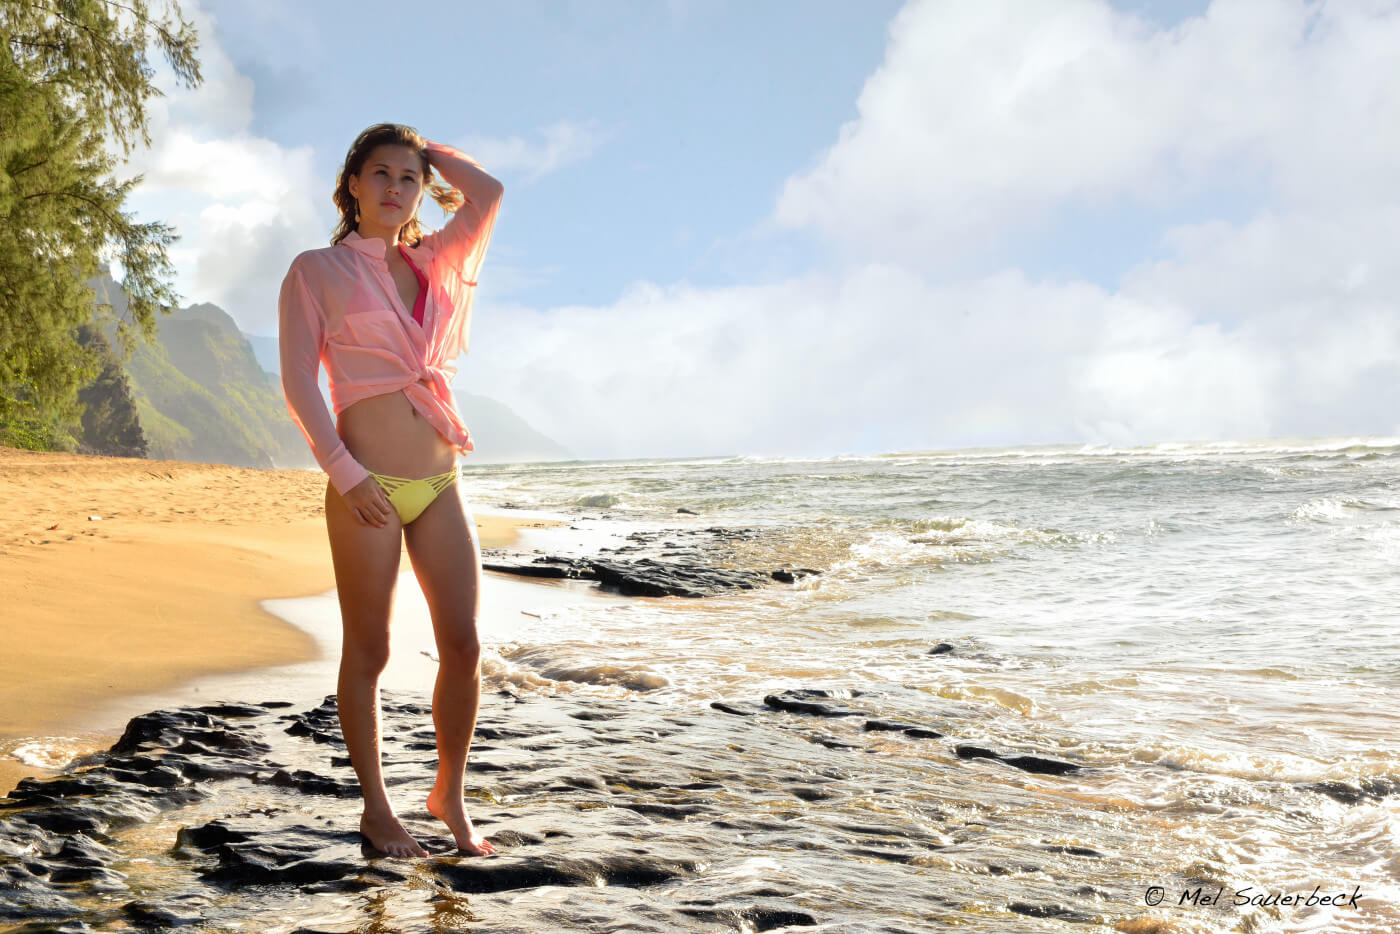 Beautiful young woman, standing in ocean surf, wearing pink blouse and small yellow bikini